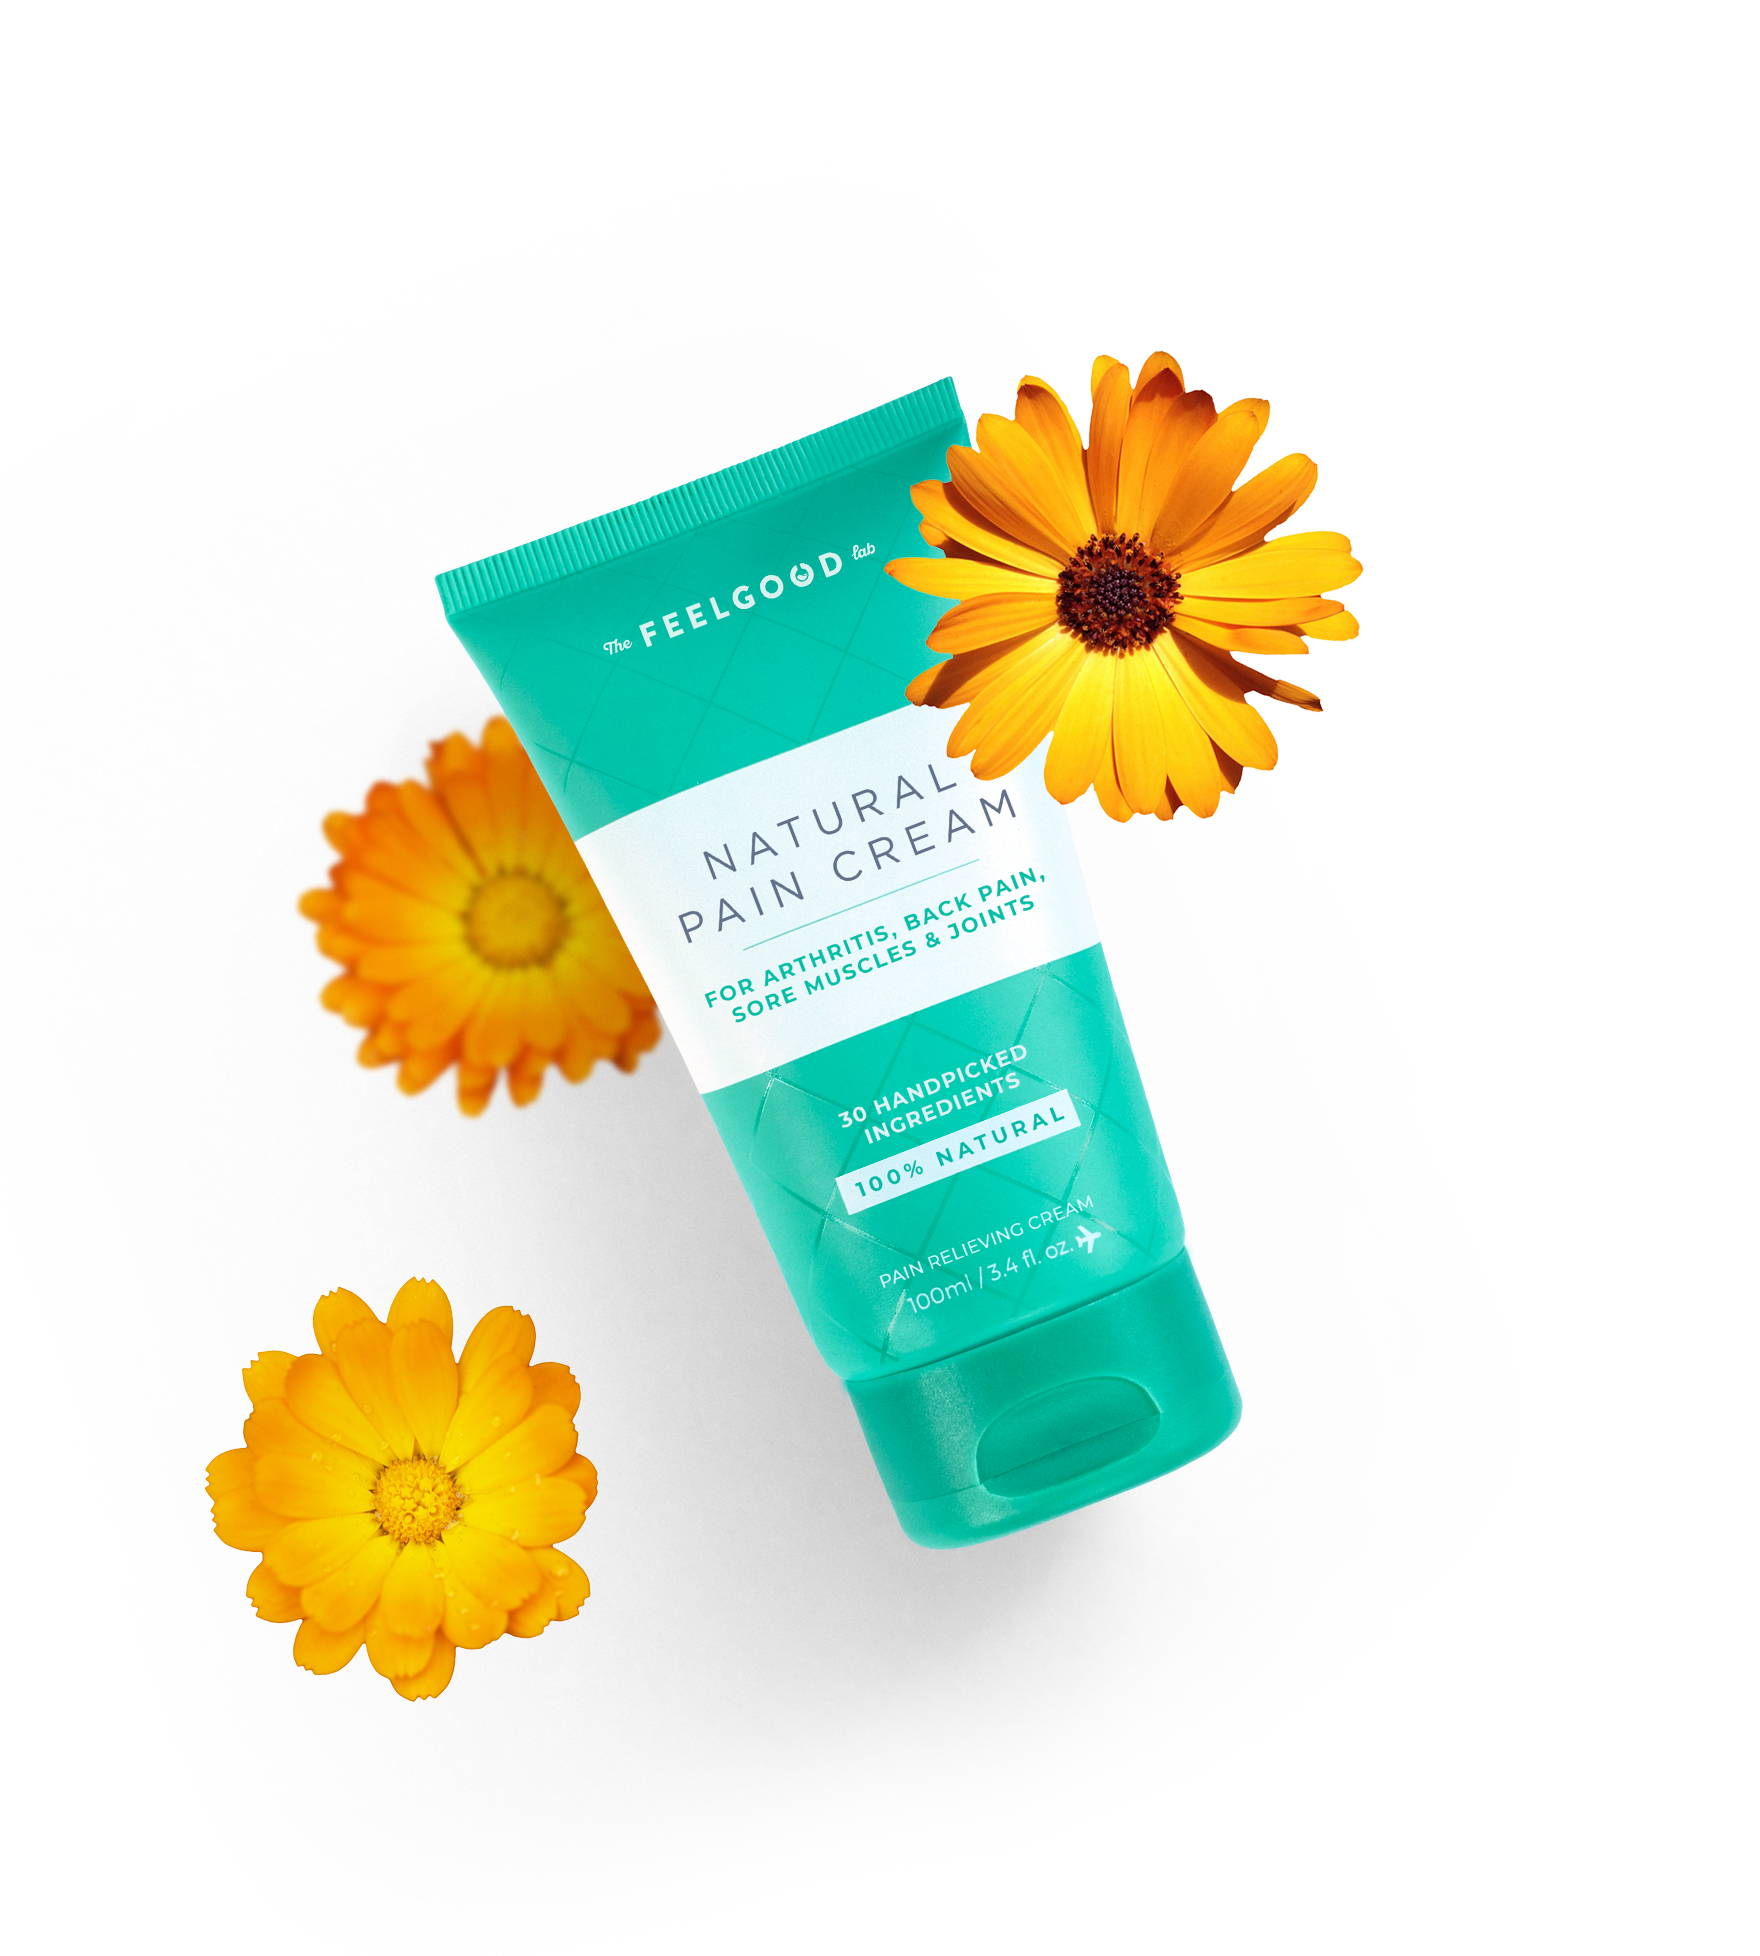 Calendula for all natural pain relief cream